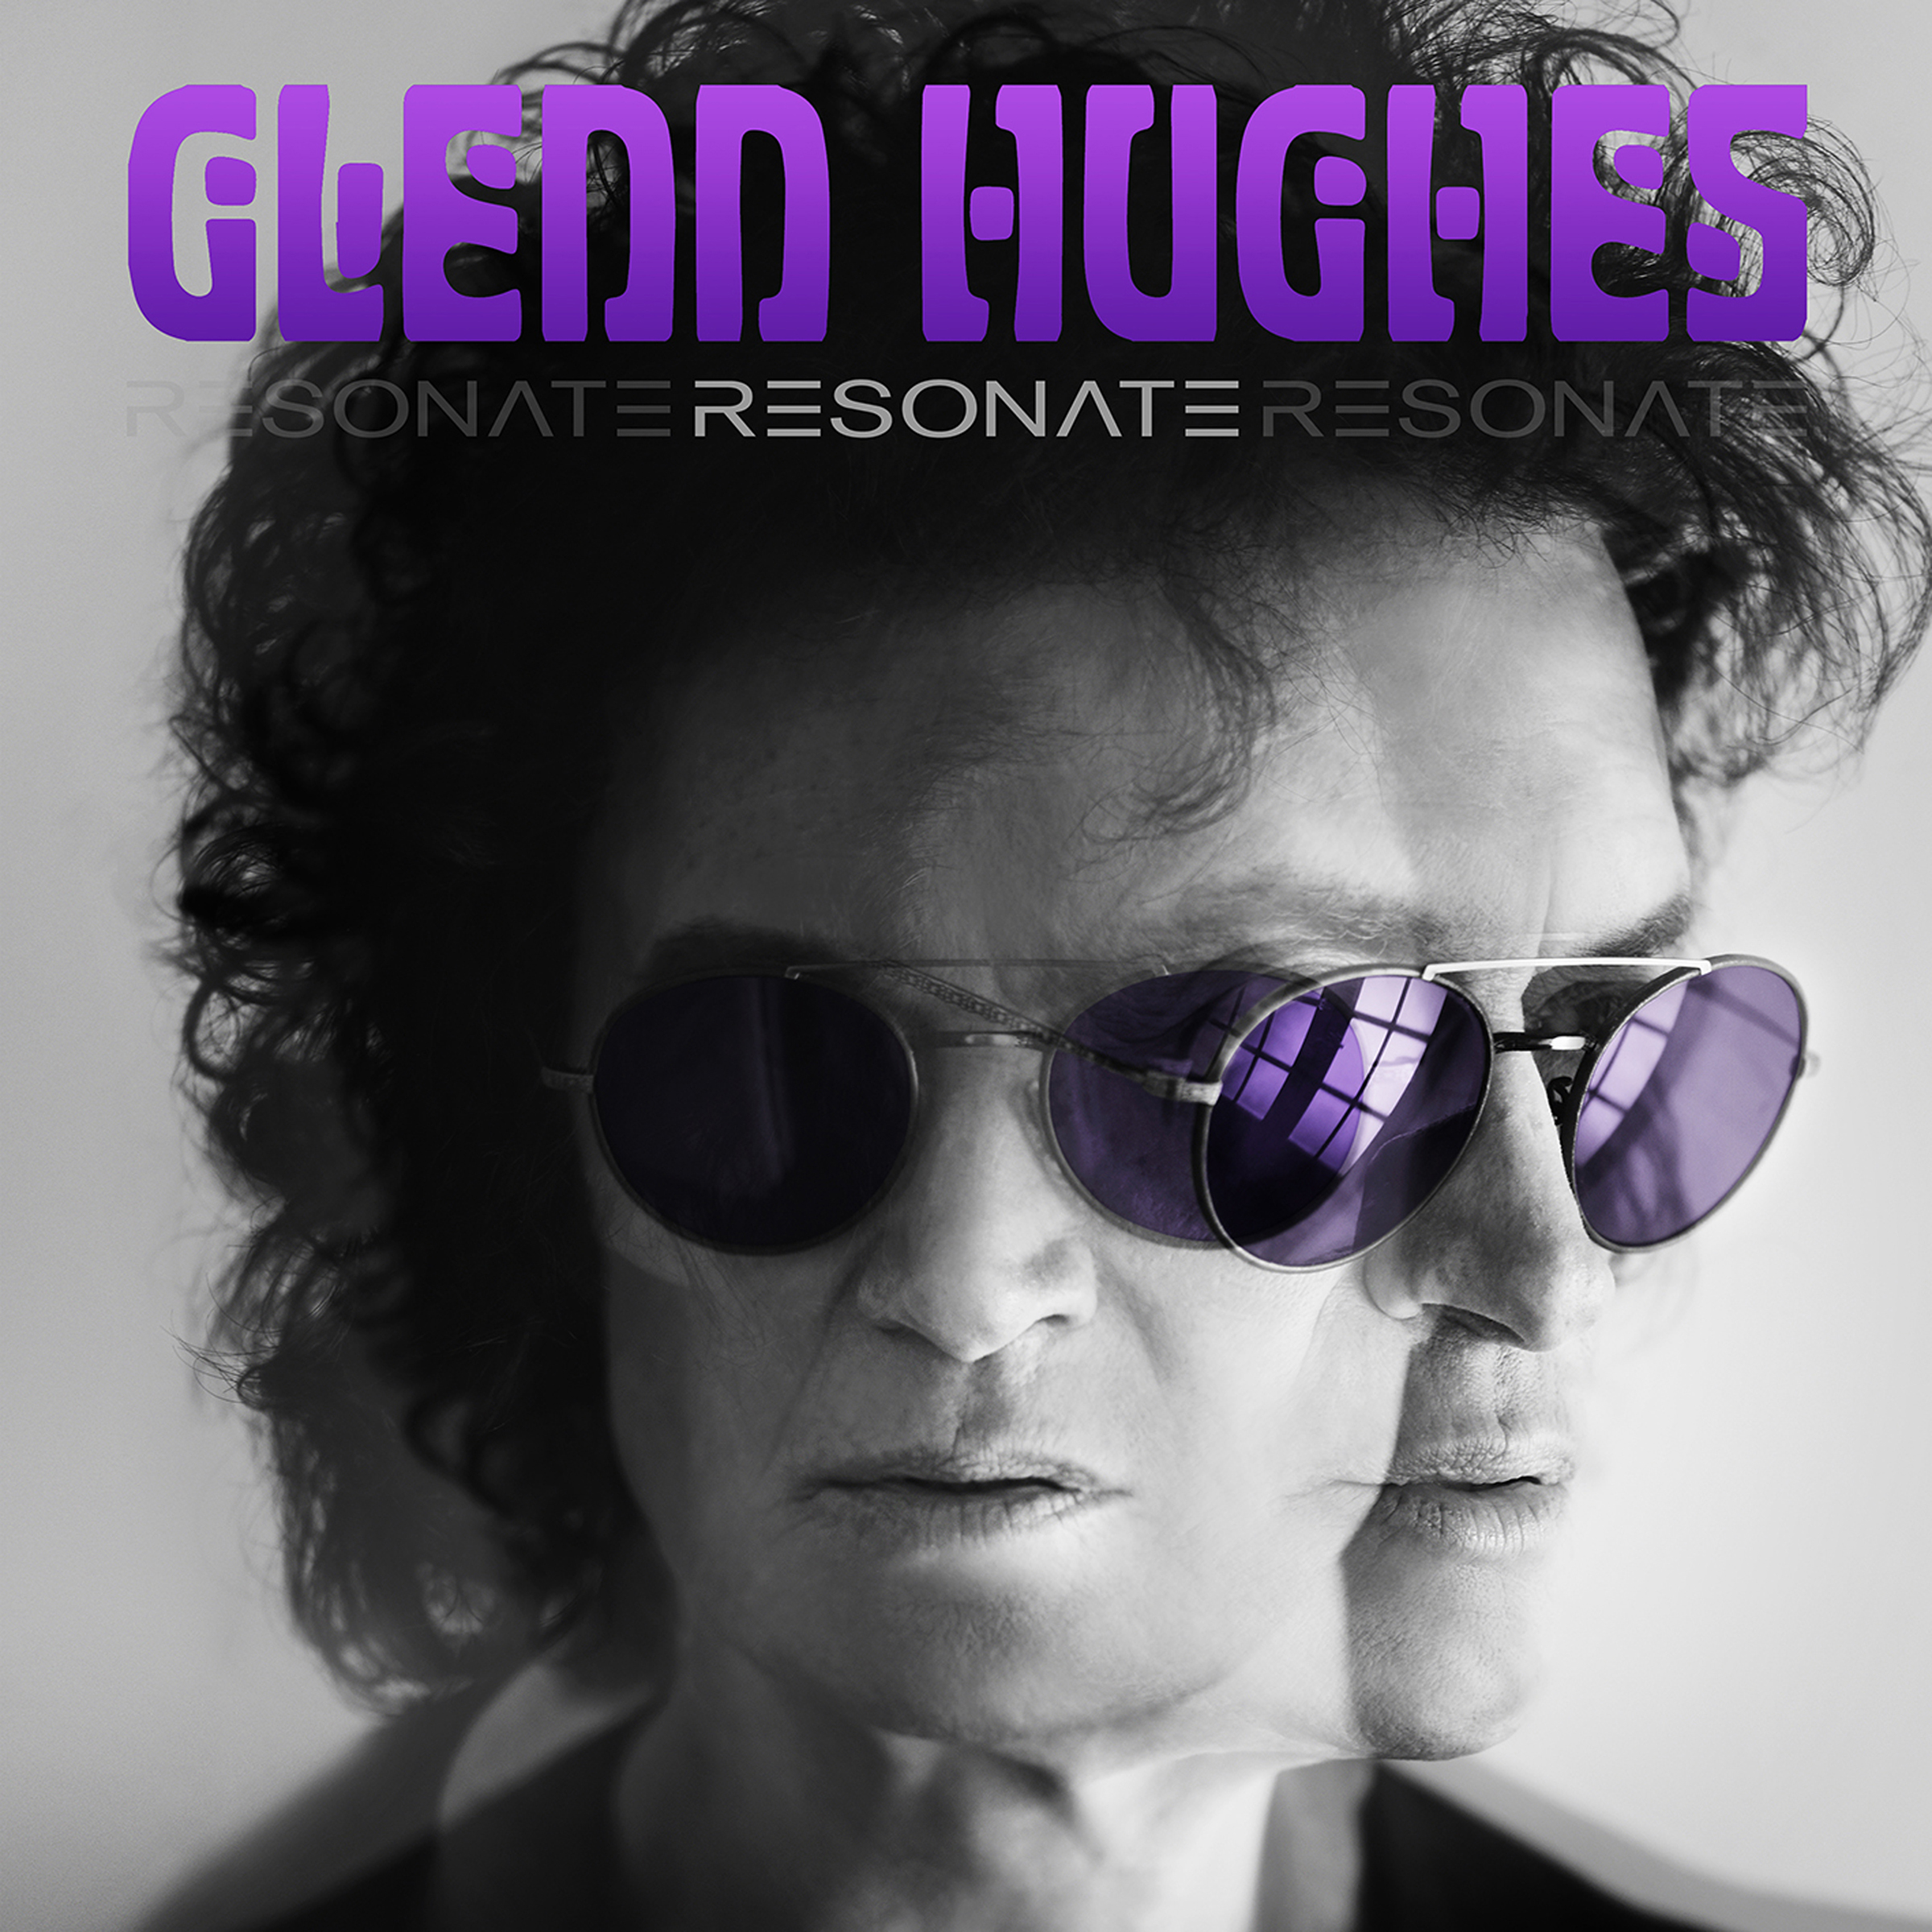 Glenn Hughes returns to the musical forefront with Resonate!